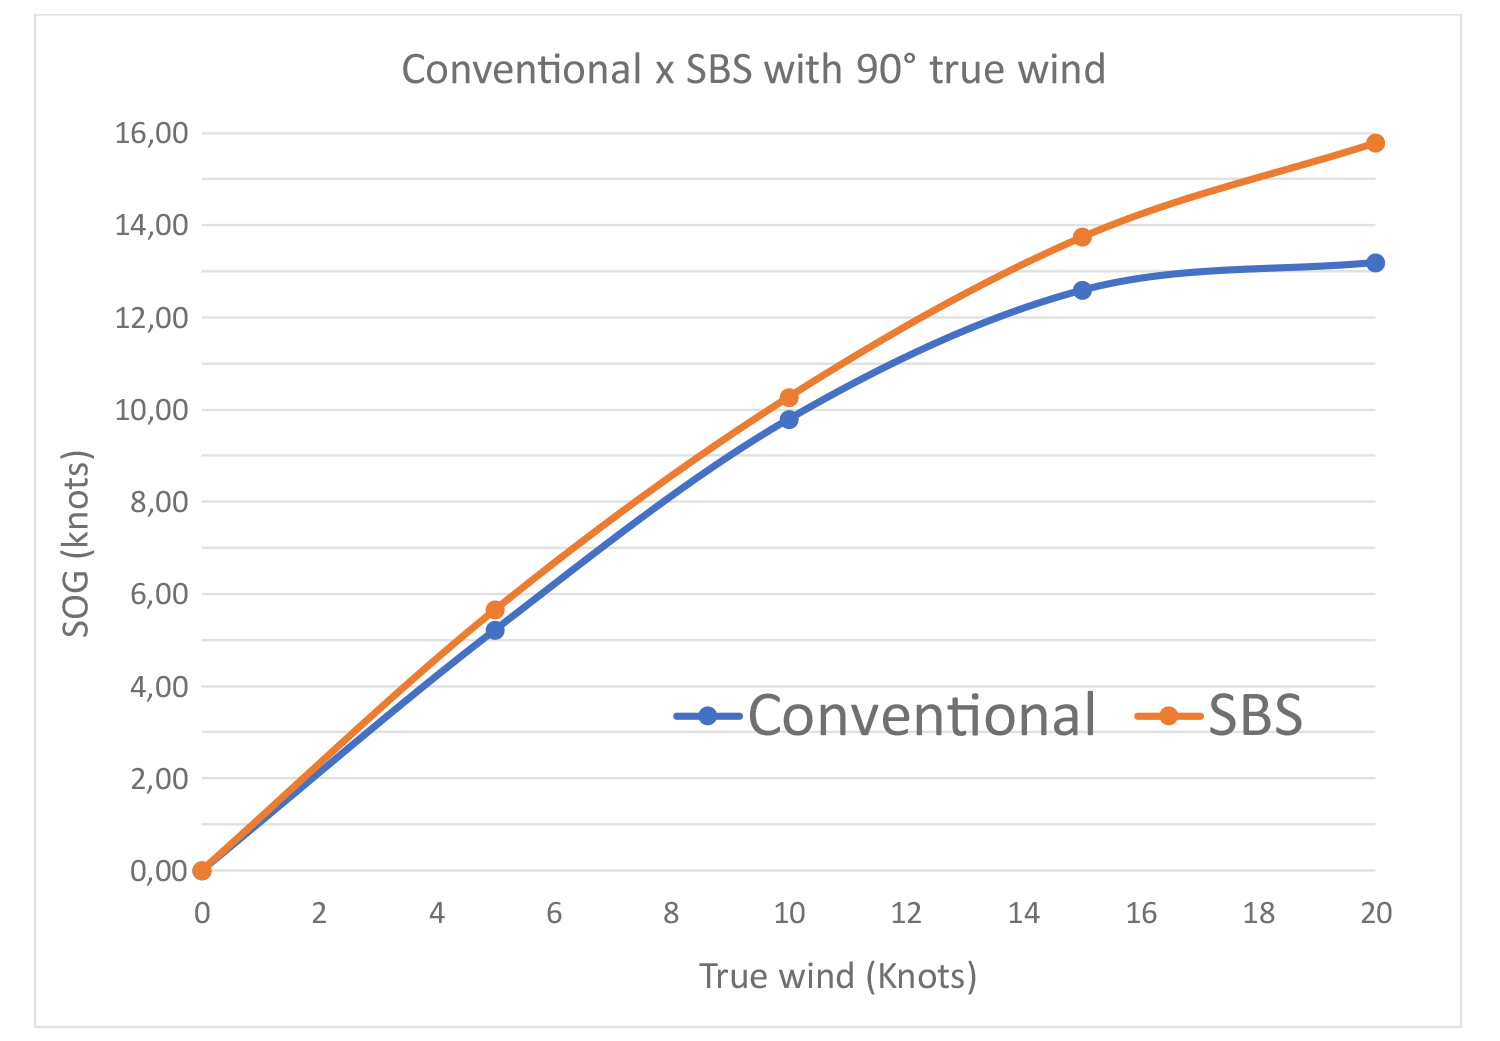 Graph 2: Comparison between powers generated by wind in the different boats